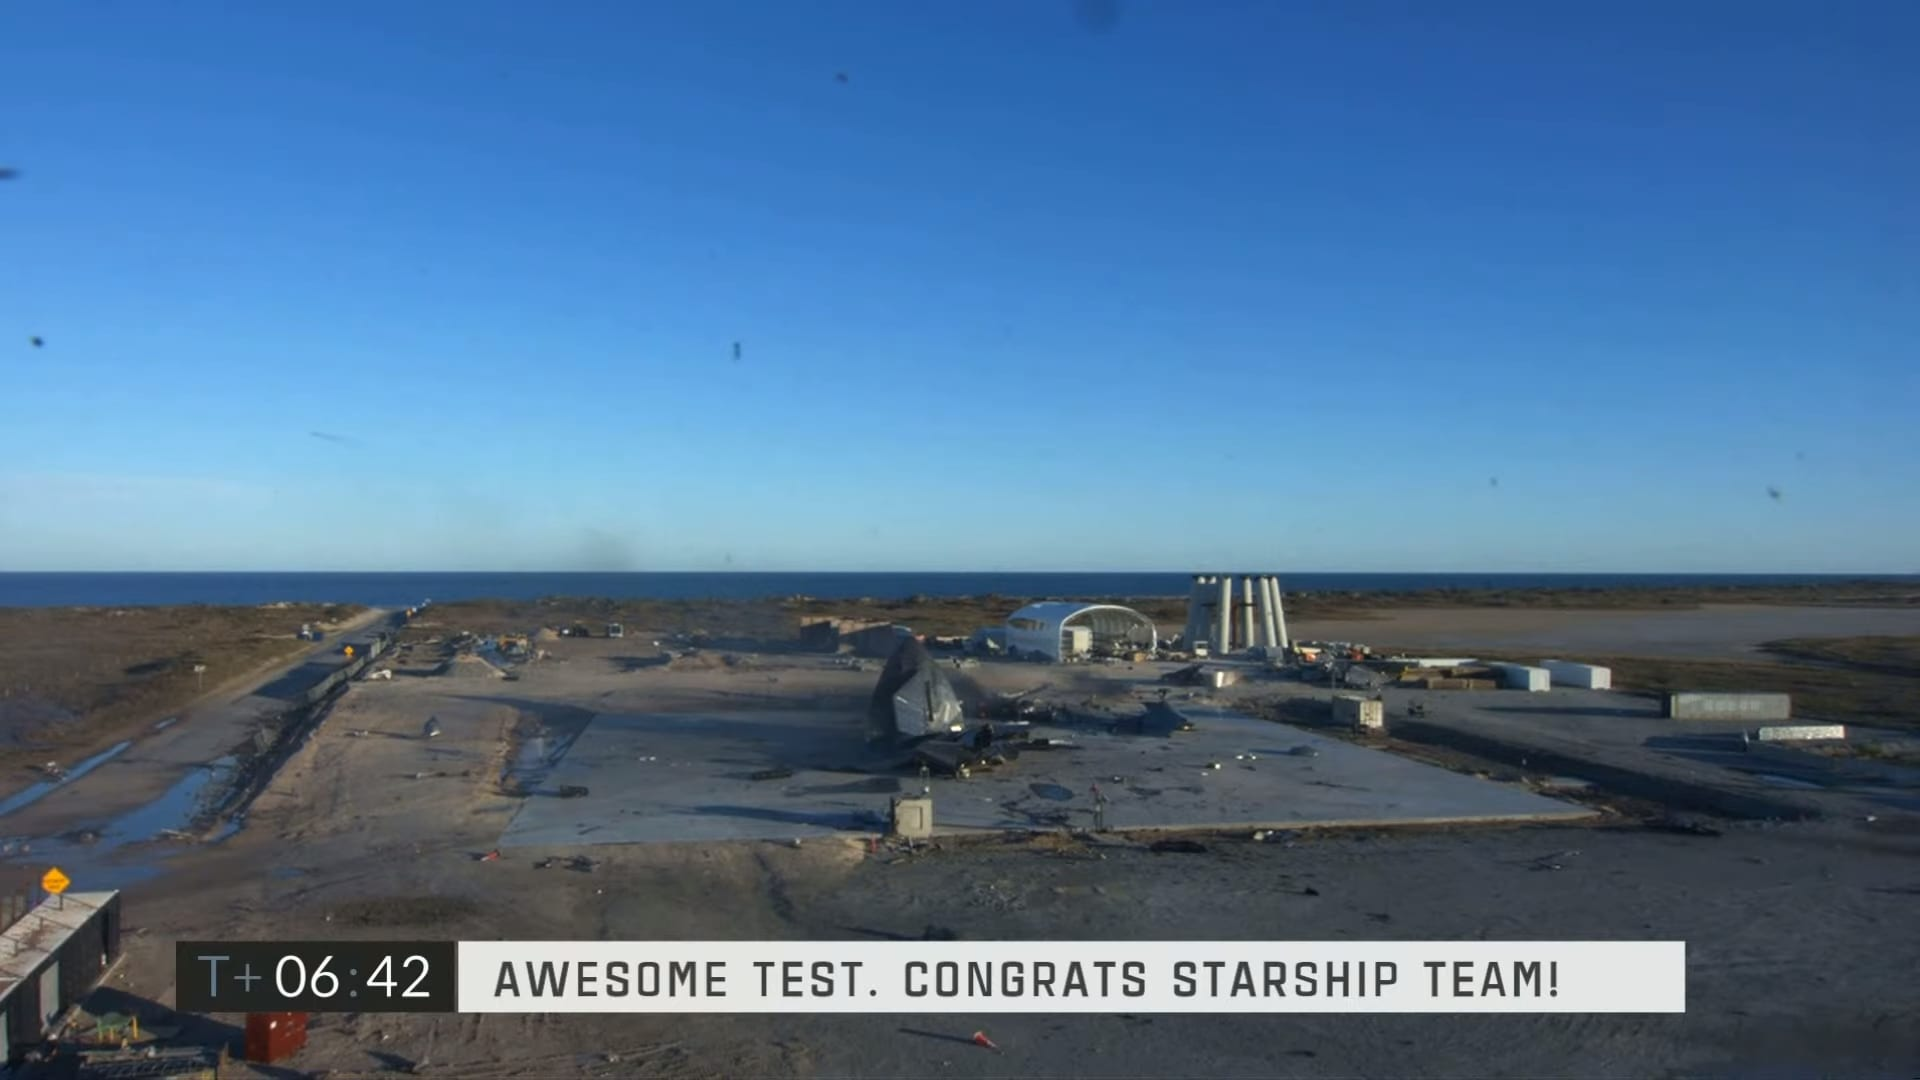 The remains of Starship SN8 on the landing pad after the flight test.